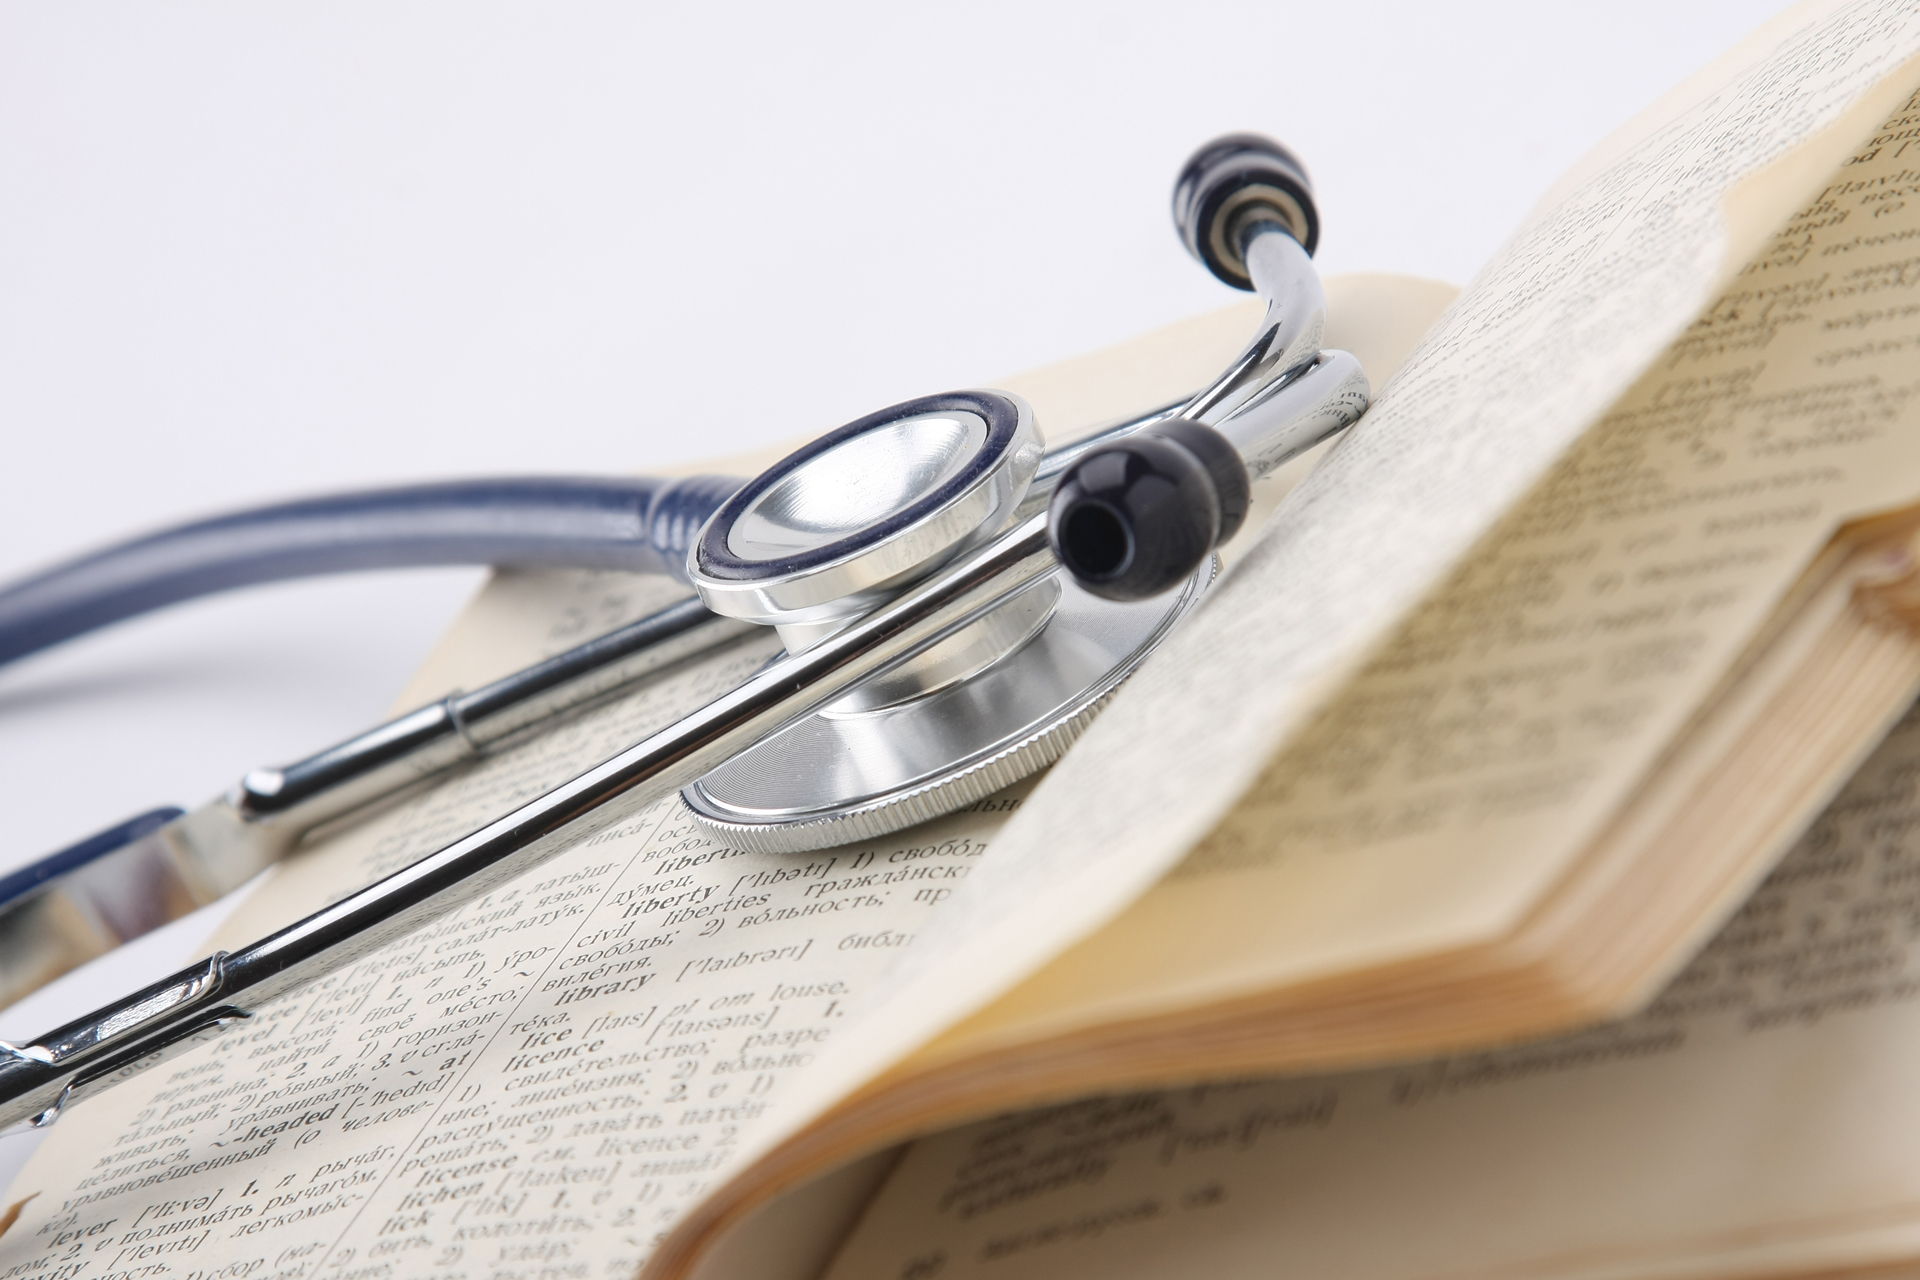 A stethoscope on an opened book, closeup